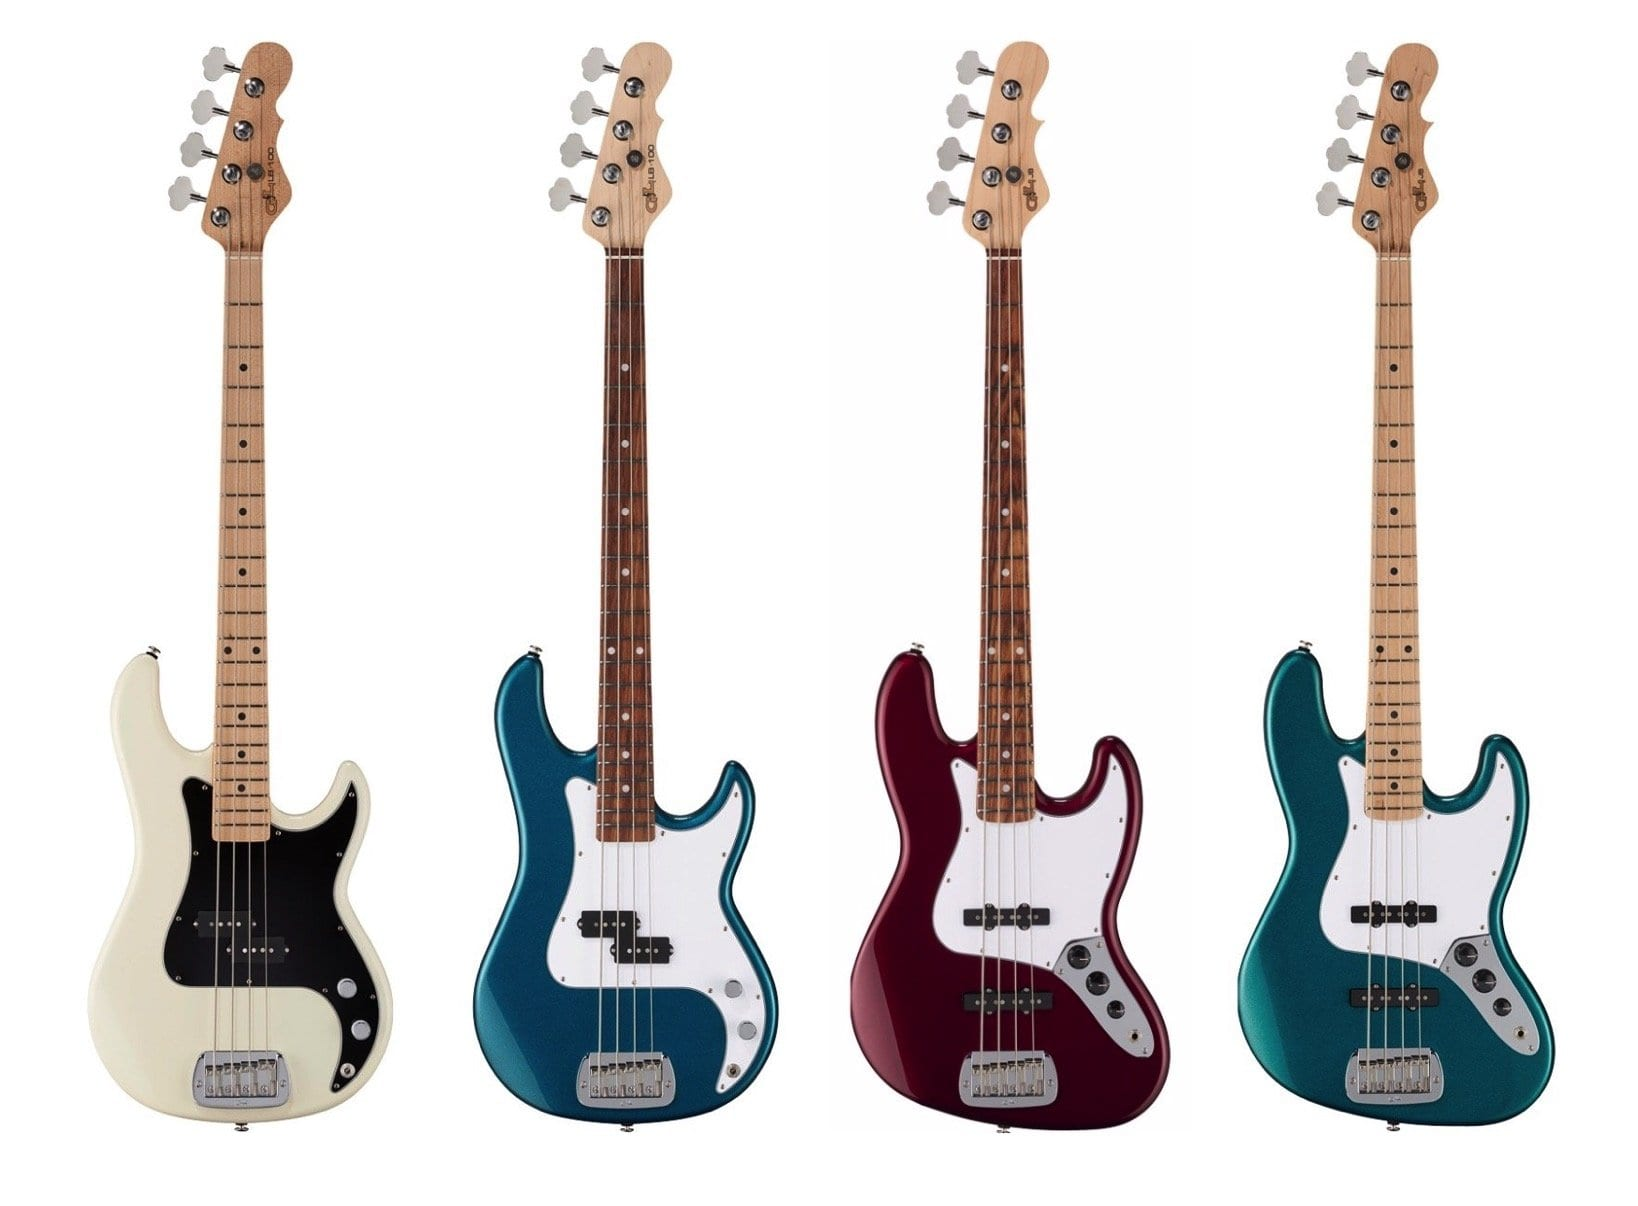 G&L LB-100 and the JB Bass models